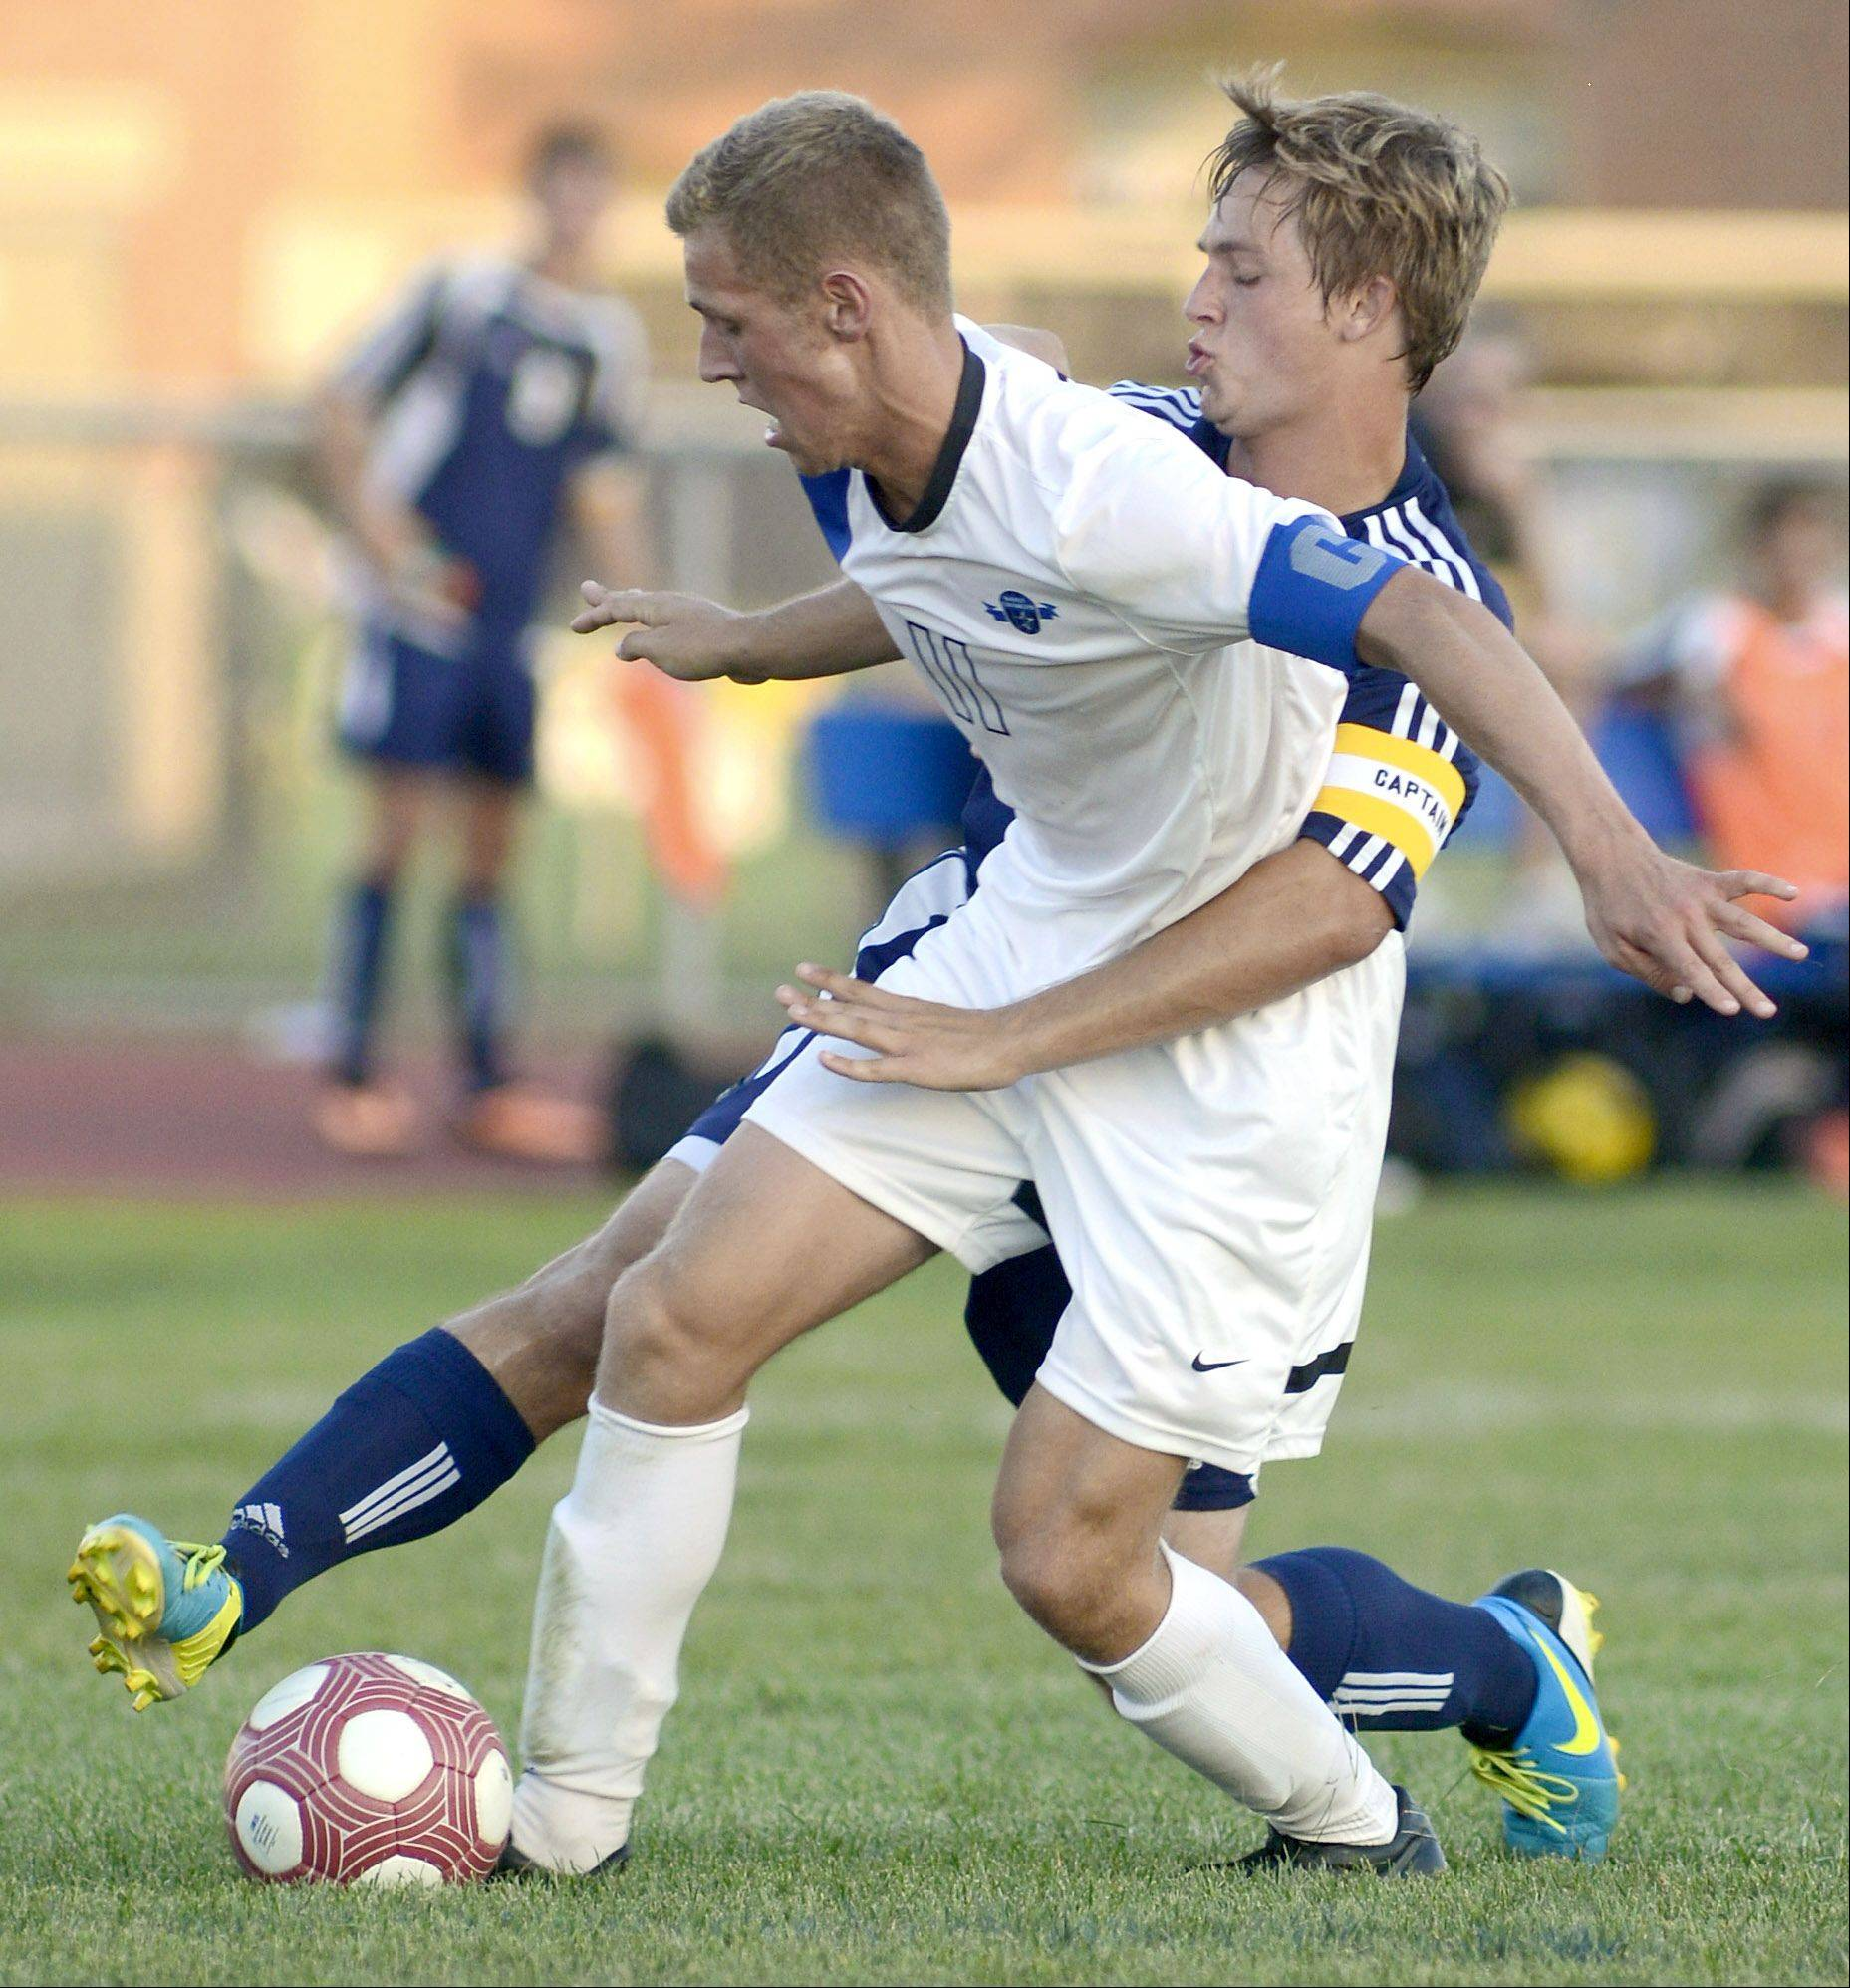 St. Charles North's Phillip LeGare and Neuqua Valley's Nick Castelvecchi wrestle for possession of the ball in the first half on Tuesday, August 27.